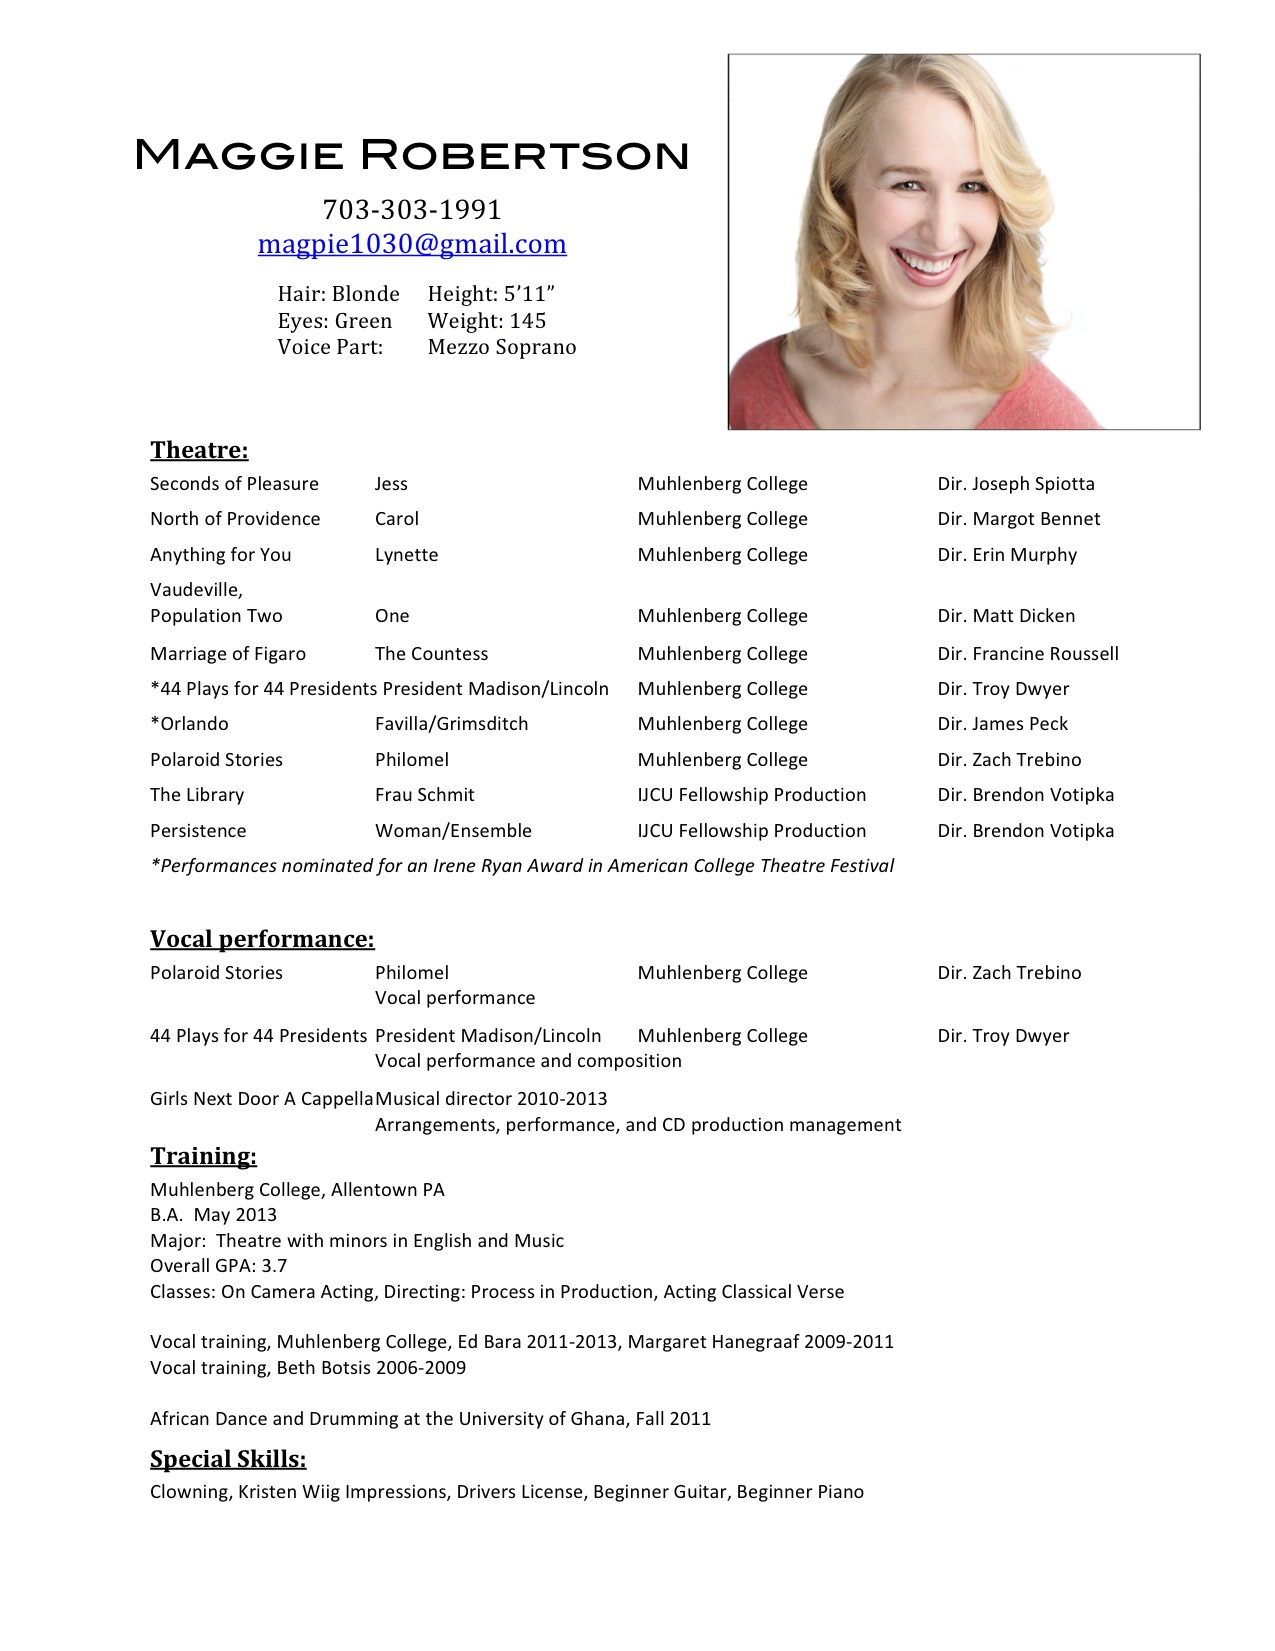 Examples Of Resumes Marvelous Sample Job Resume College Acting In London Background Actor Format